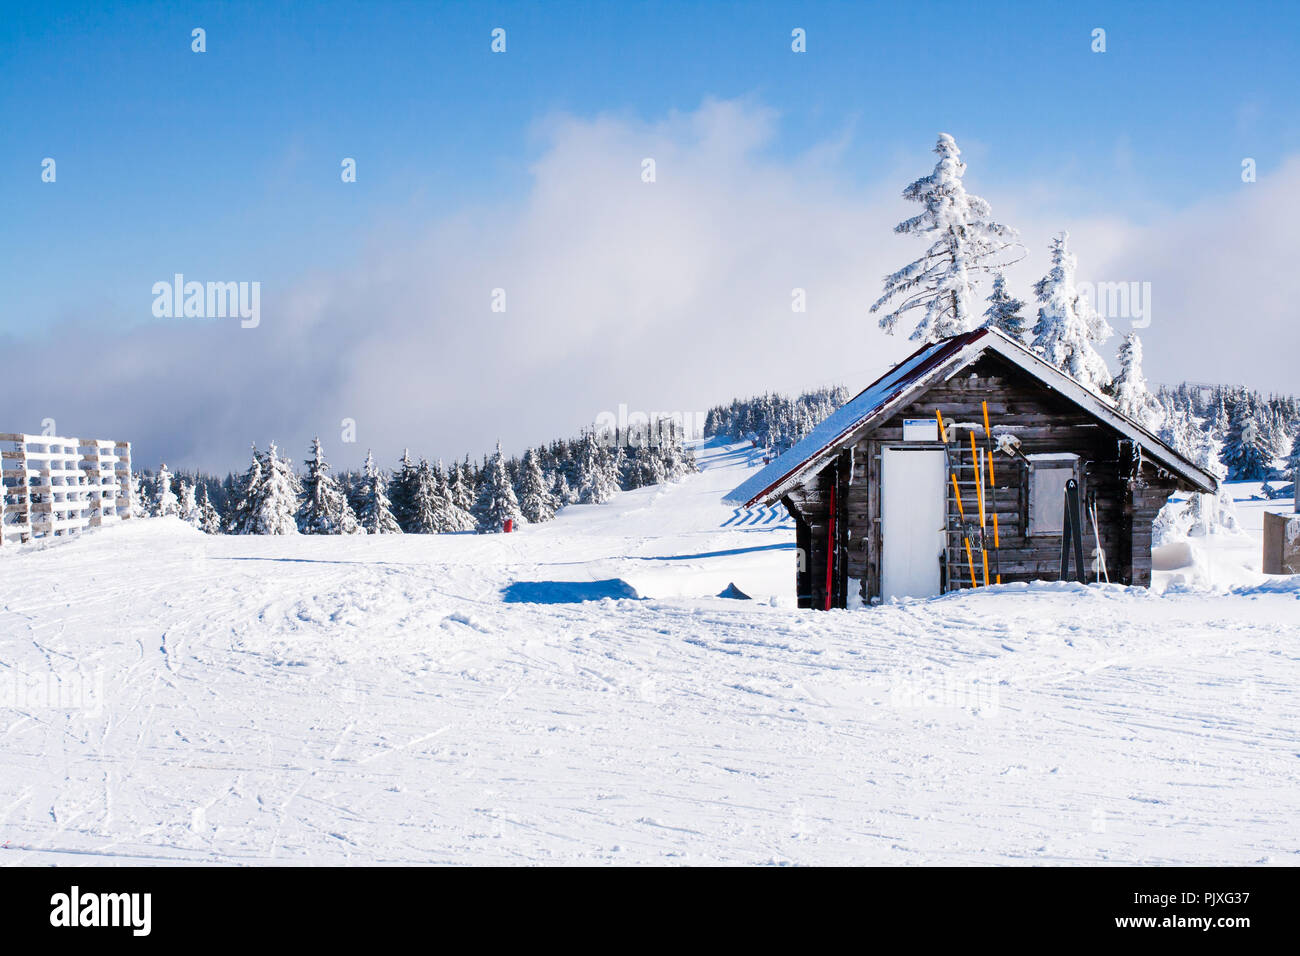 Vacation Rural Winter Background Landscape With Small Wooden Alpine